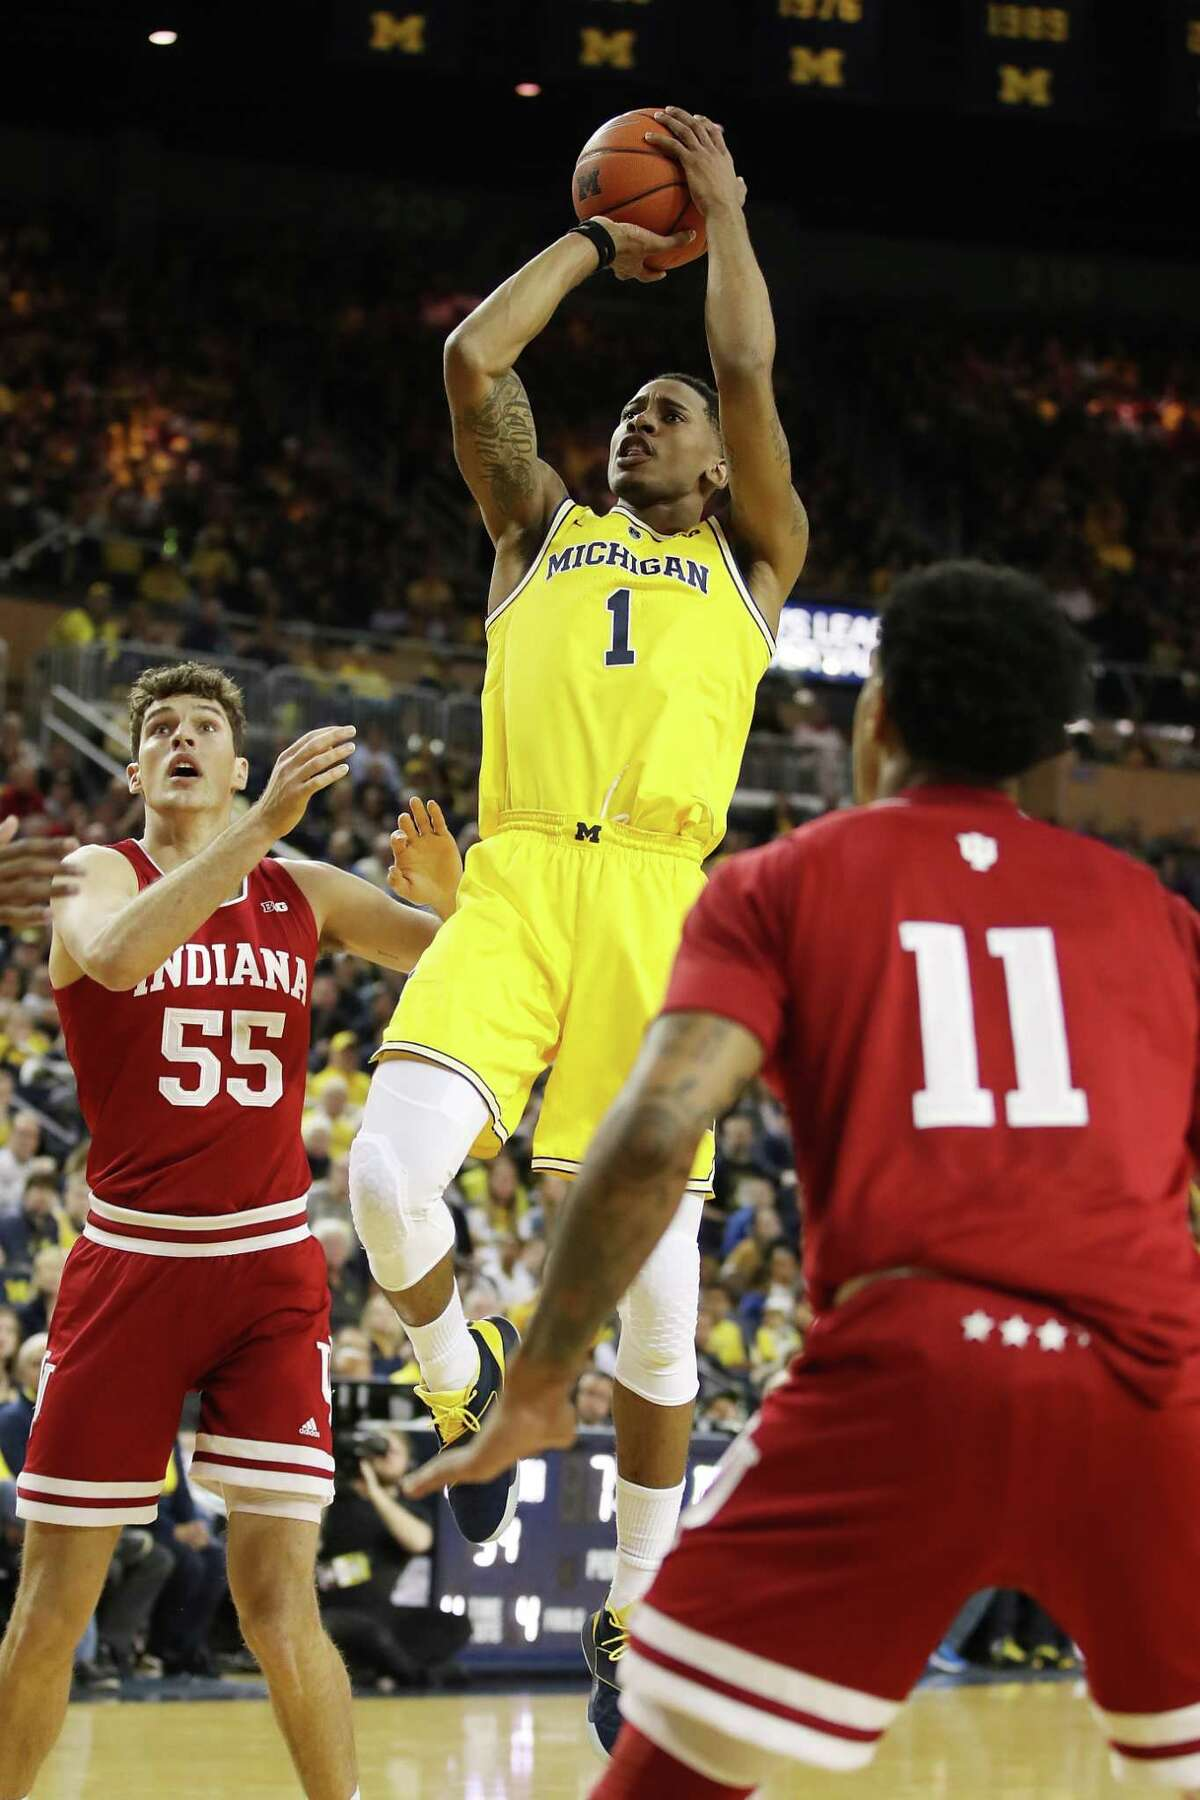 ANN ARBOR, MICHIGAN - JANUARY 06: Charles Matthews #1 of the Michigan Wolverines takes a jump shot next to Evan Fitzner #55 of the Indiana Hoosiers during the first half at Crisler Arena on January 06, 2019 in Ann Arbor, Michigan. (Photo by Gregory Shamus/Getty Images)